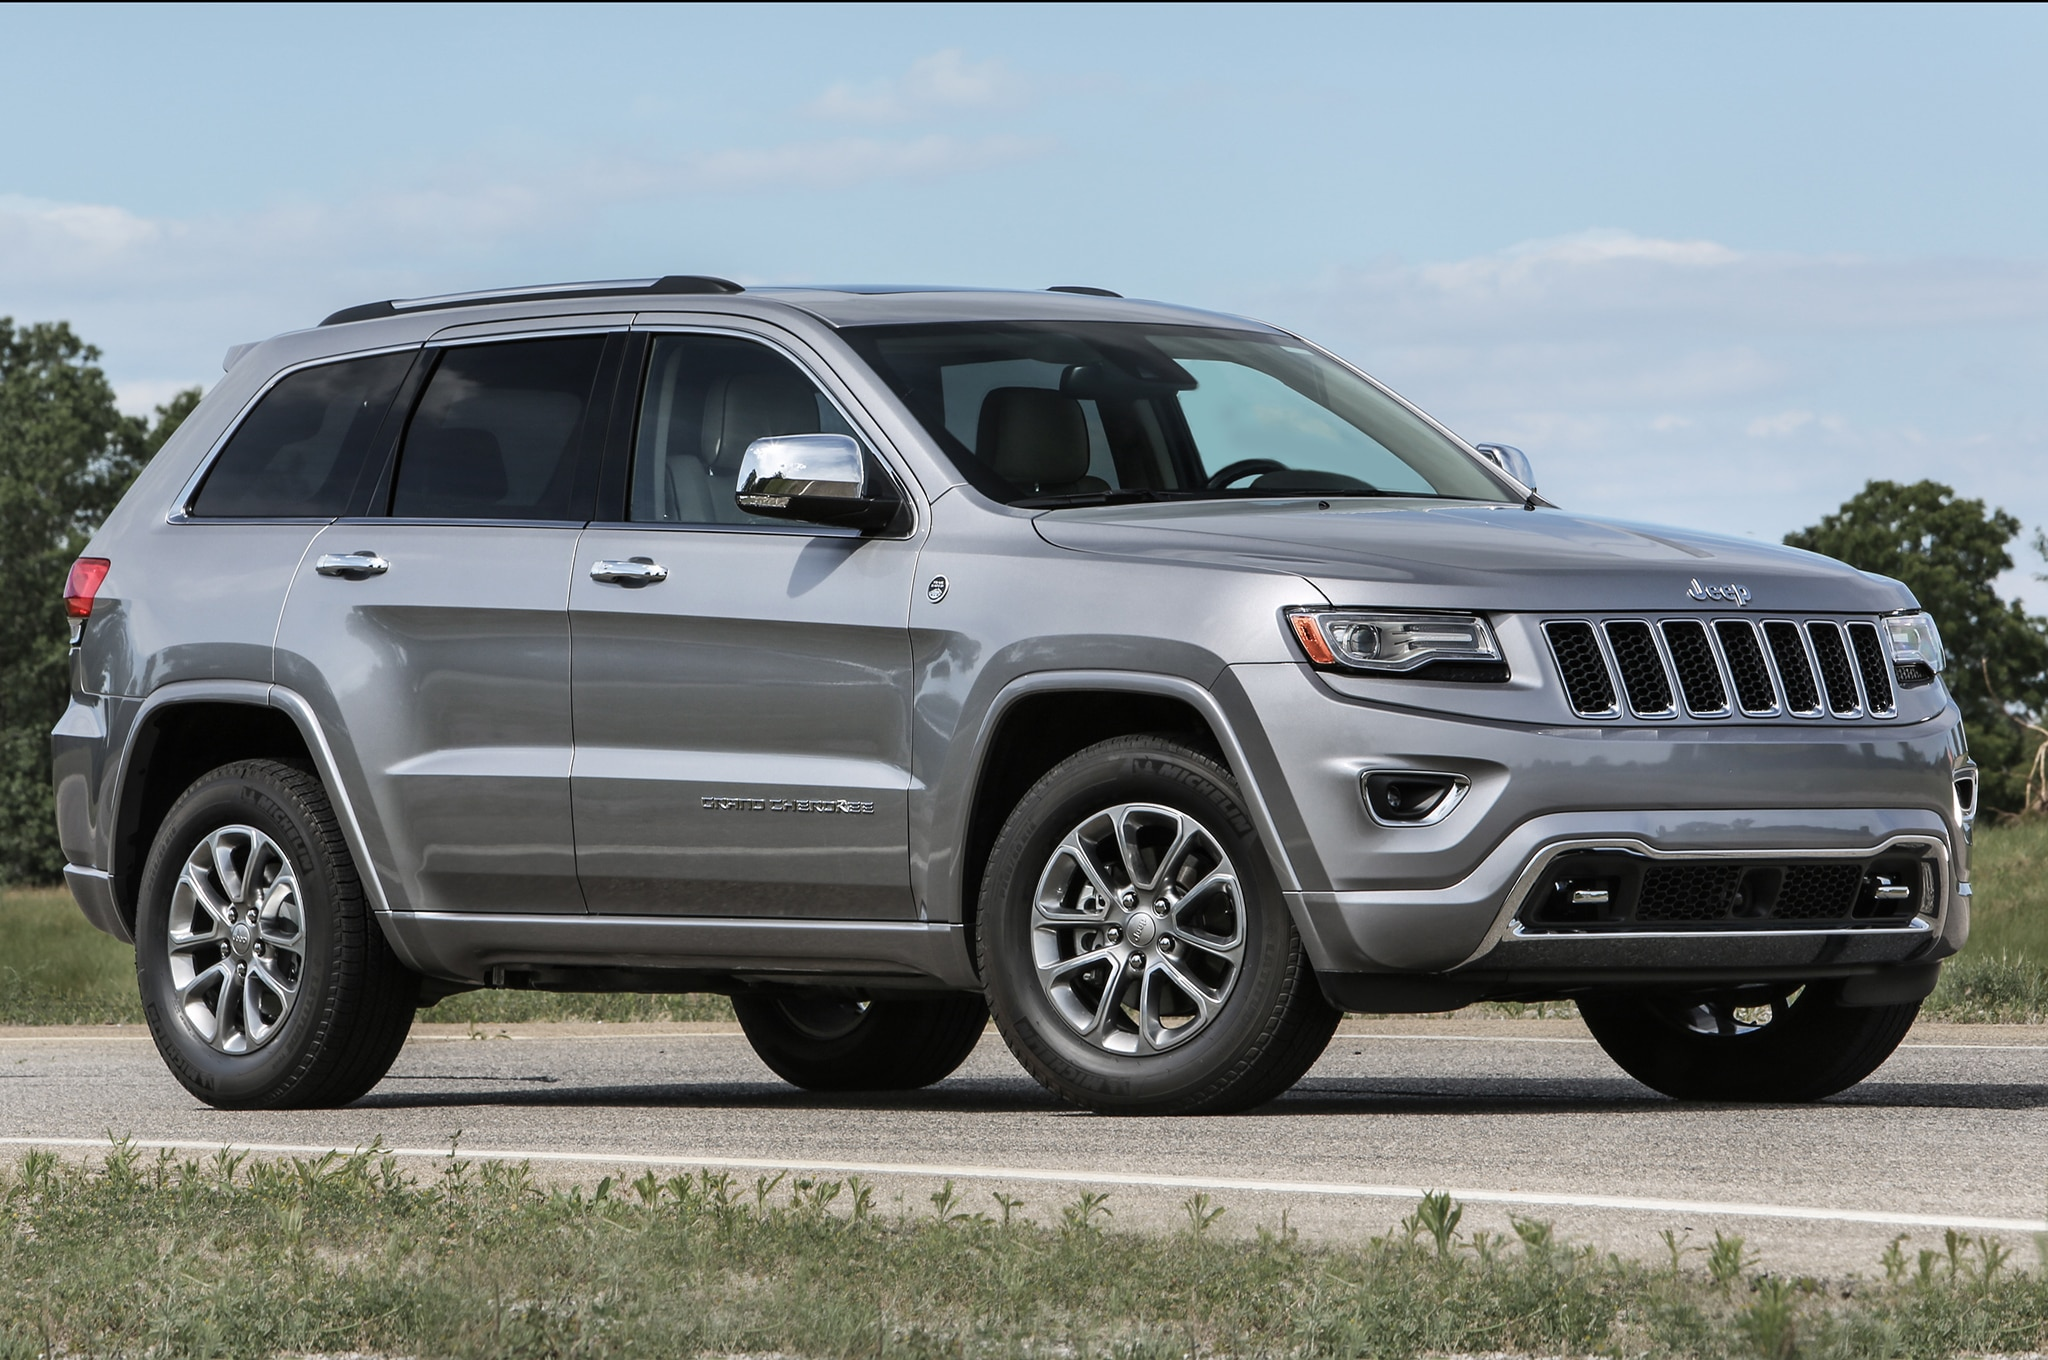 jeep grand cherokee picture - photo #48